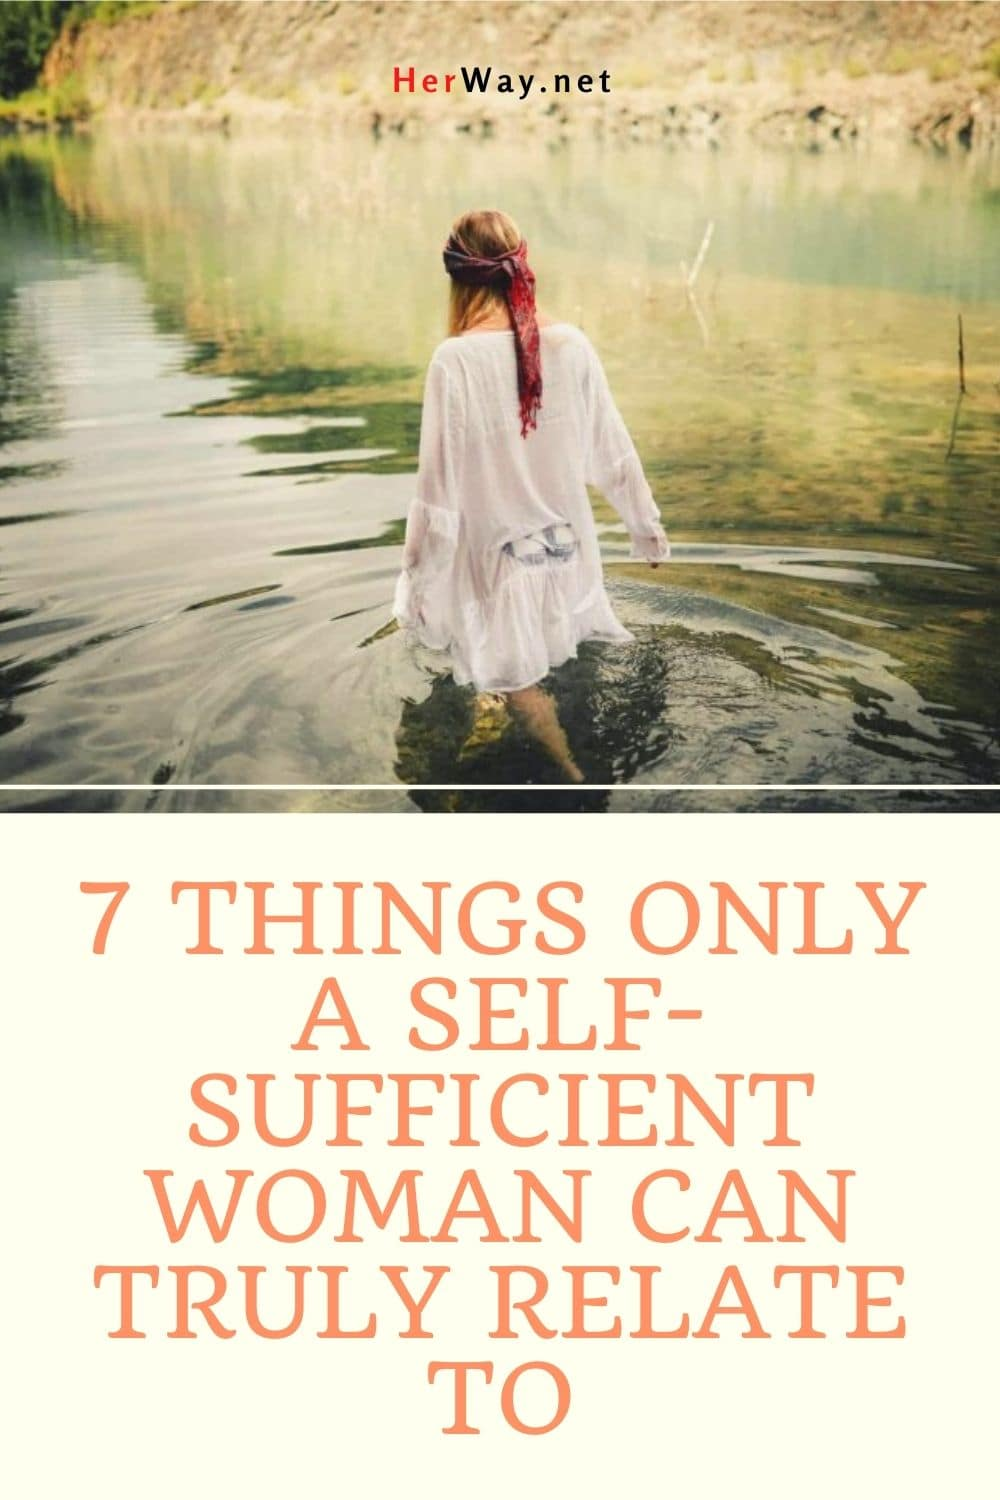 7 Things Only A Self-Sufficient Woman Can Truly Relate To